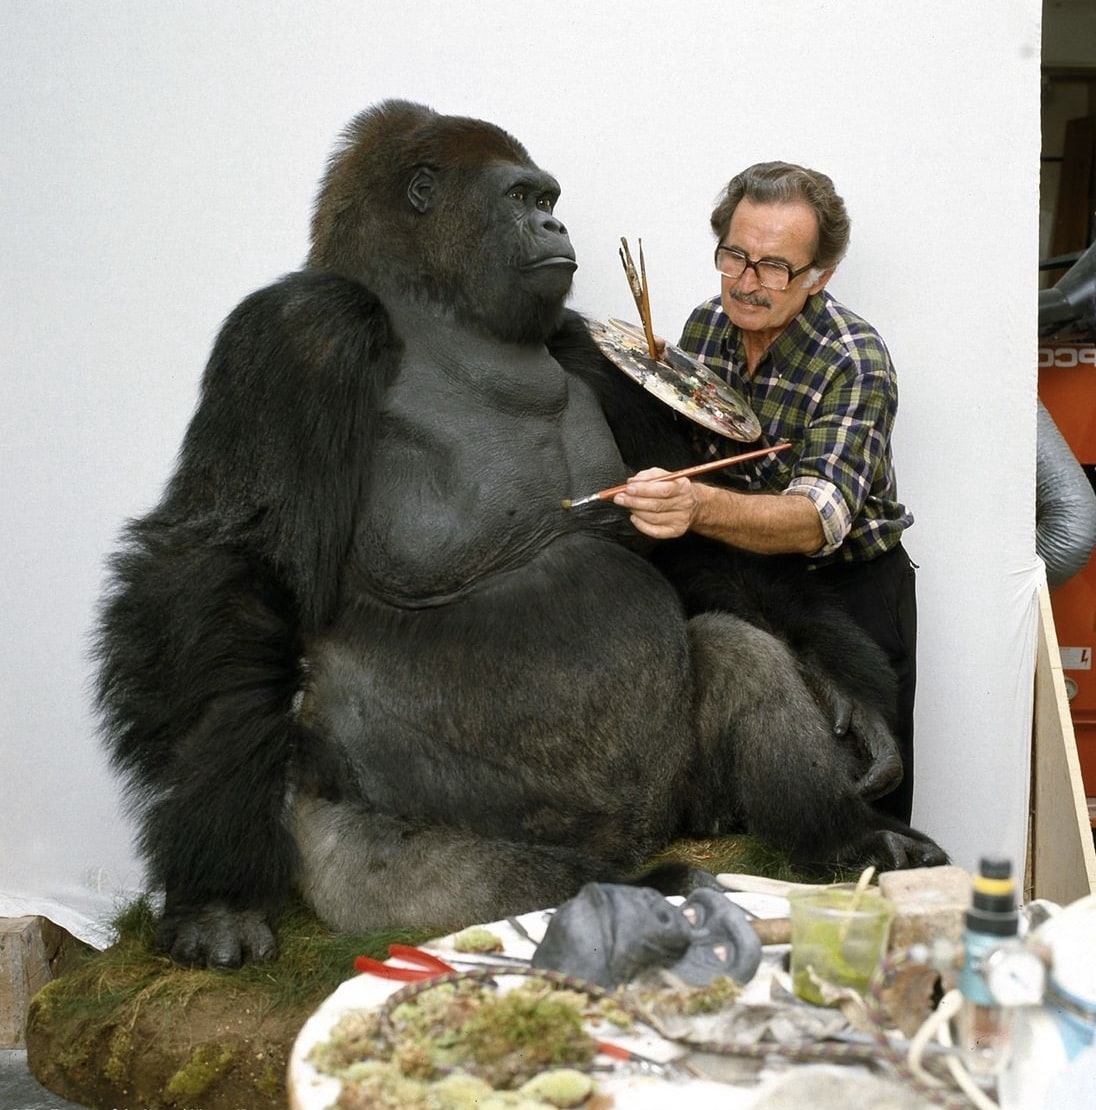 Photograph of Guy the Gorilla and taxidermist Arthur Hayward. Photo from the Natural History Museum, London